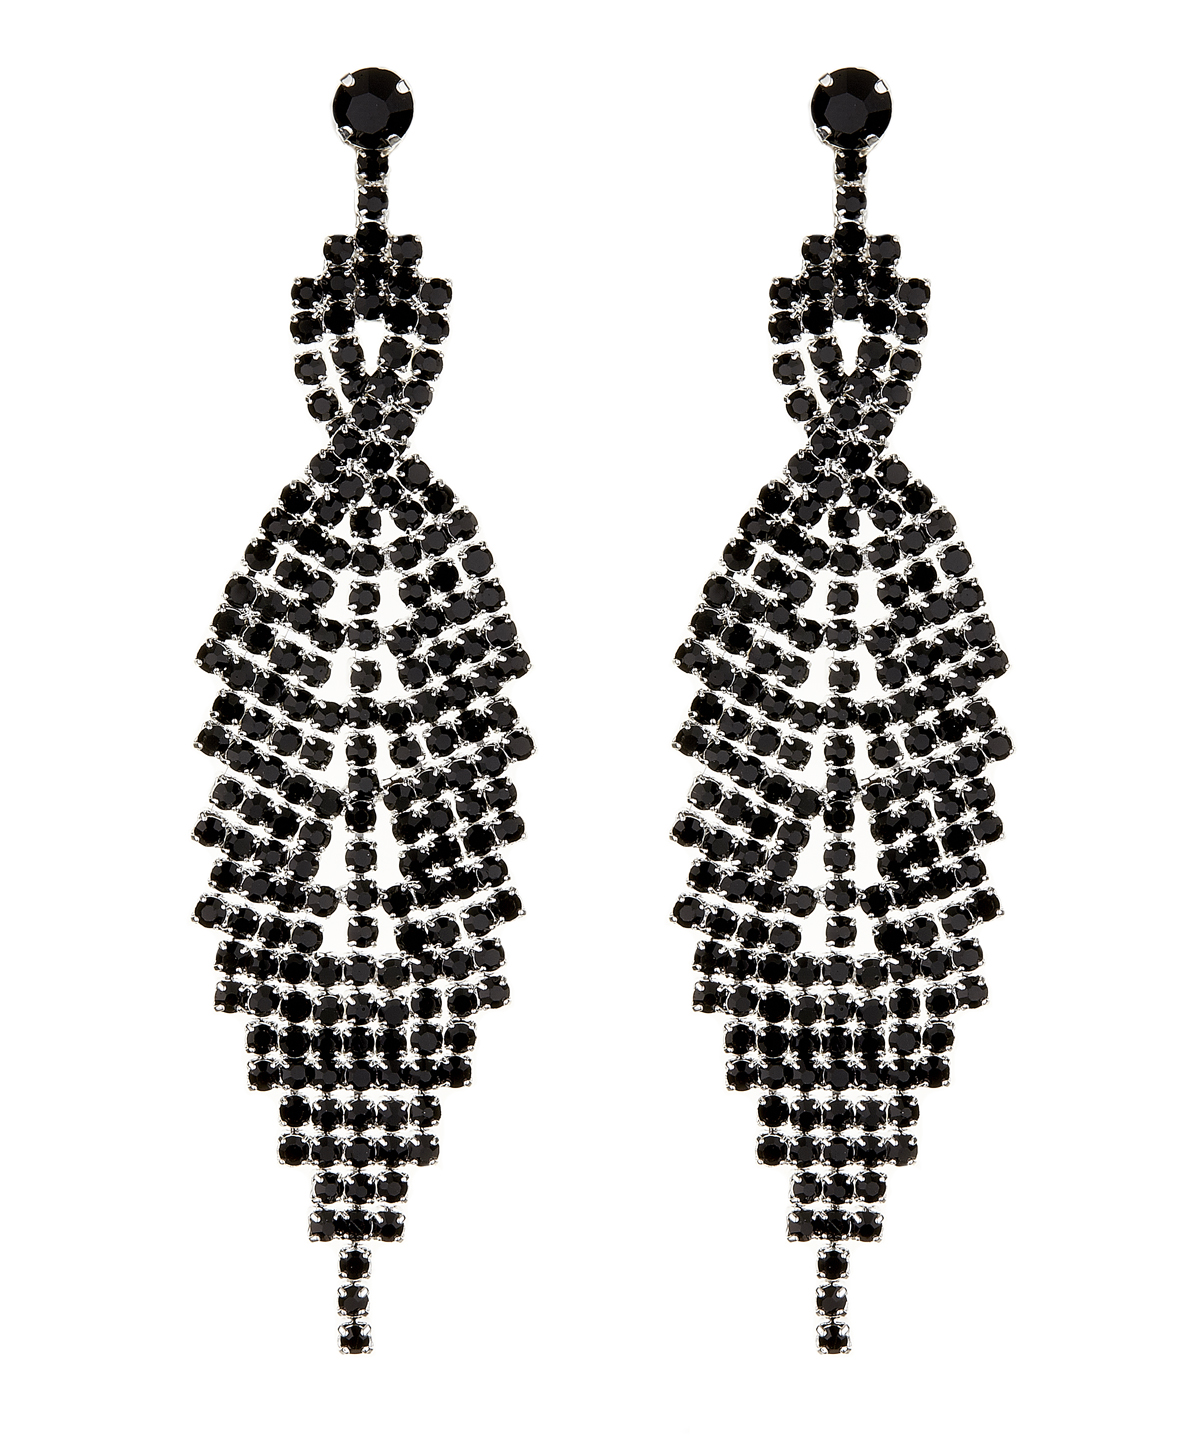 Clip On Earrings - Cadis B - silver drop earring with black crystals